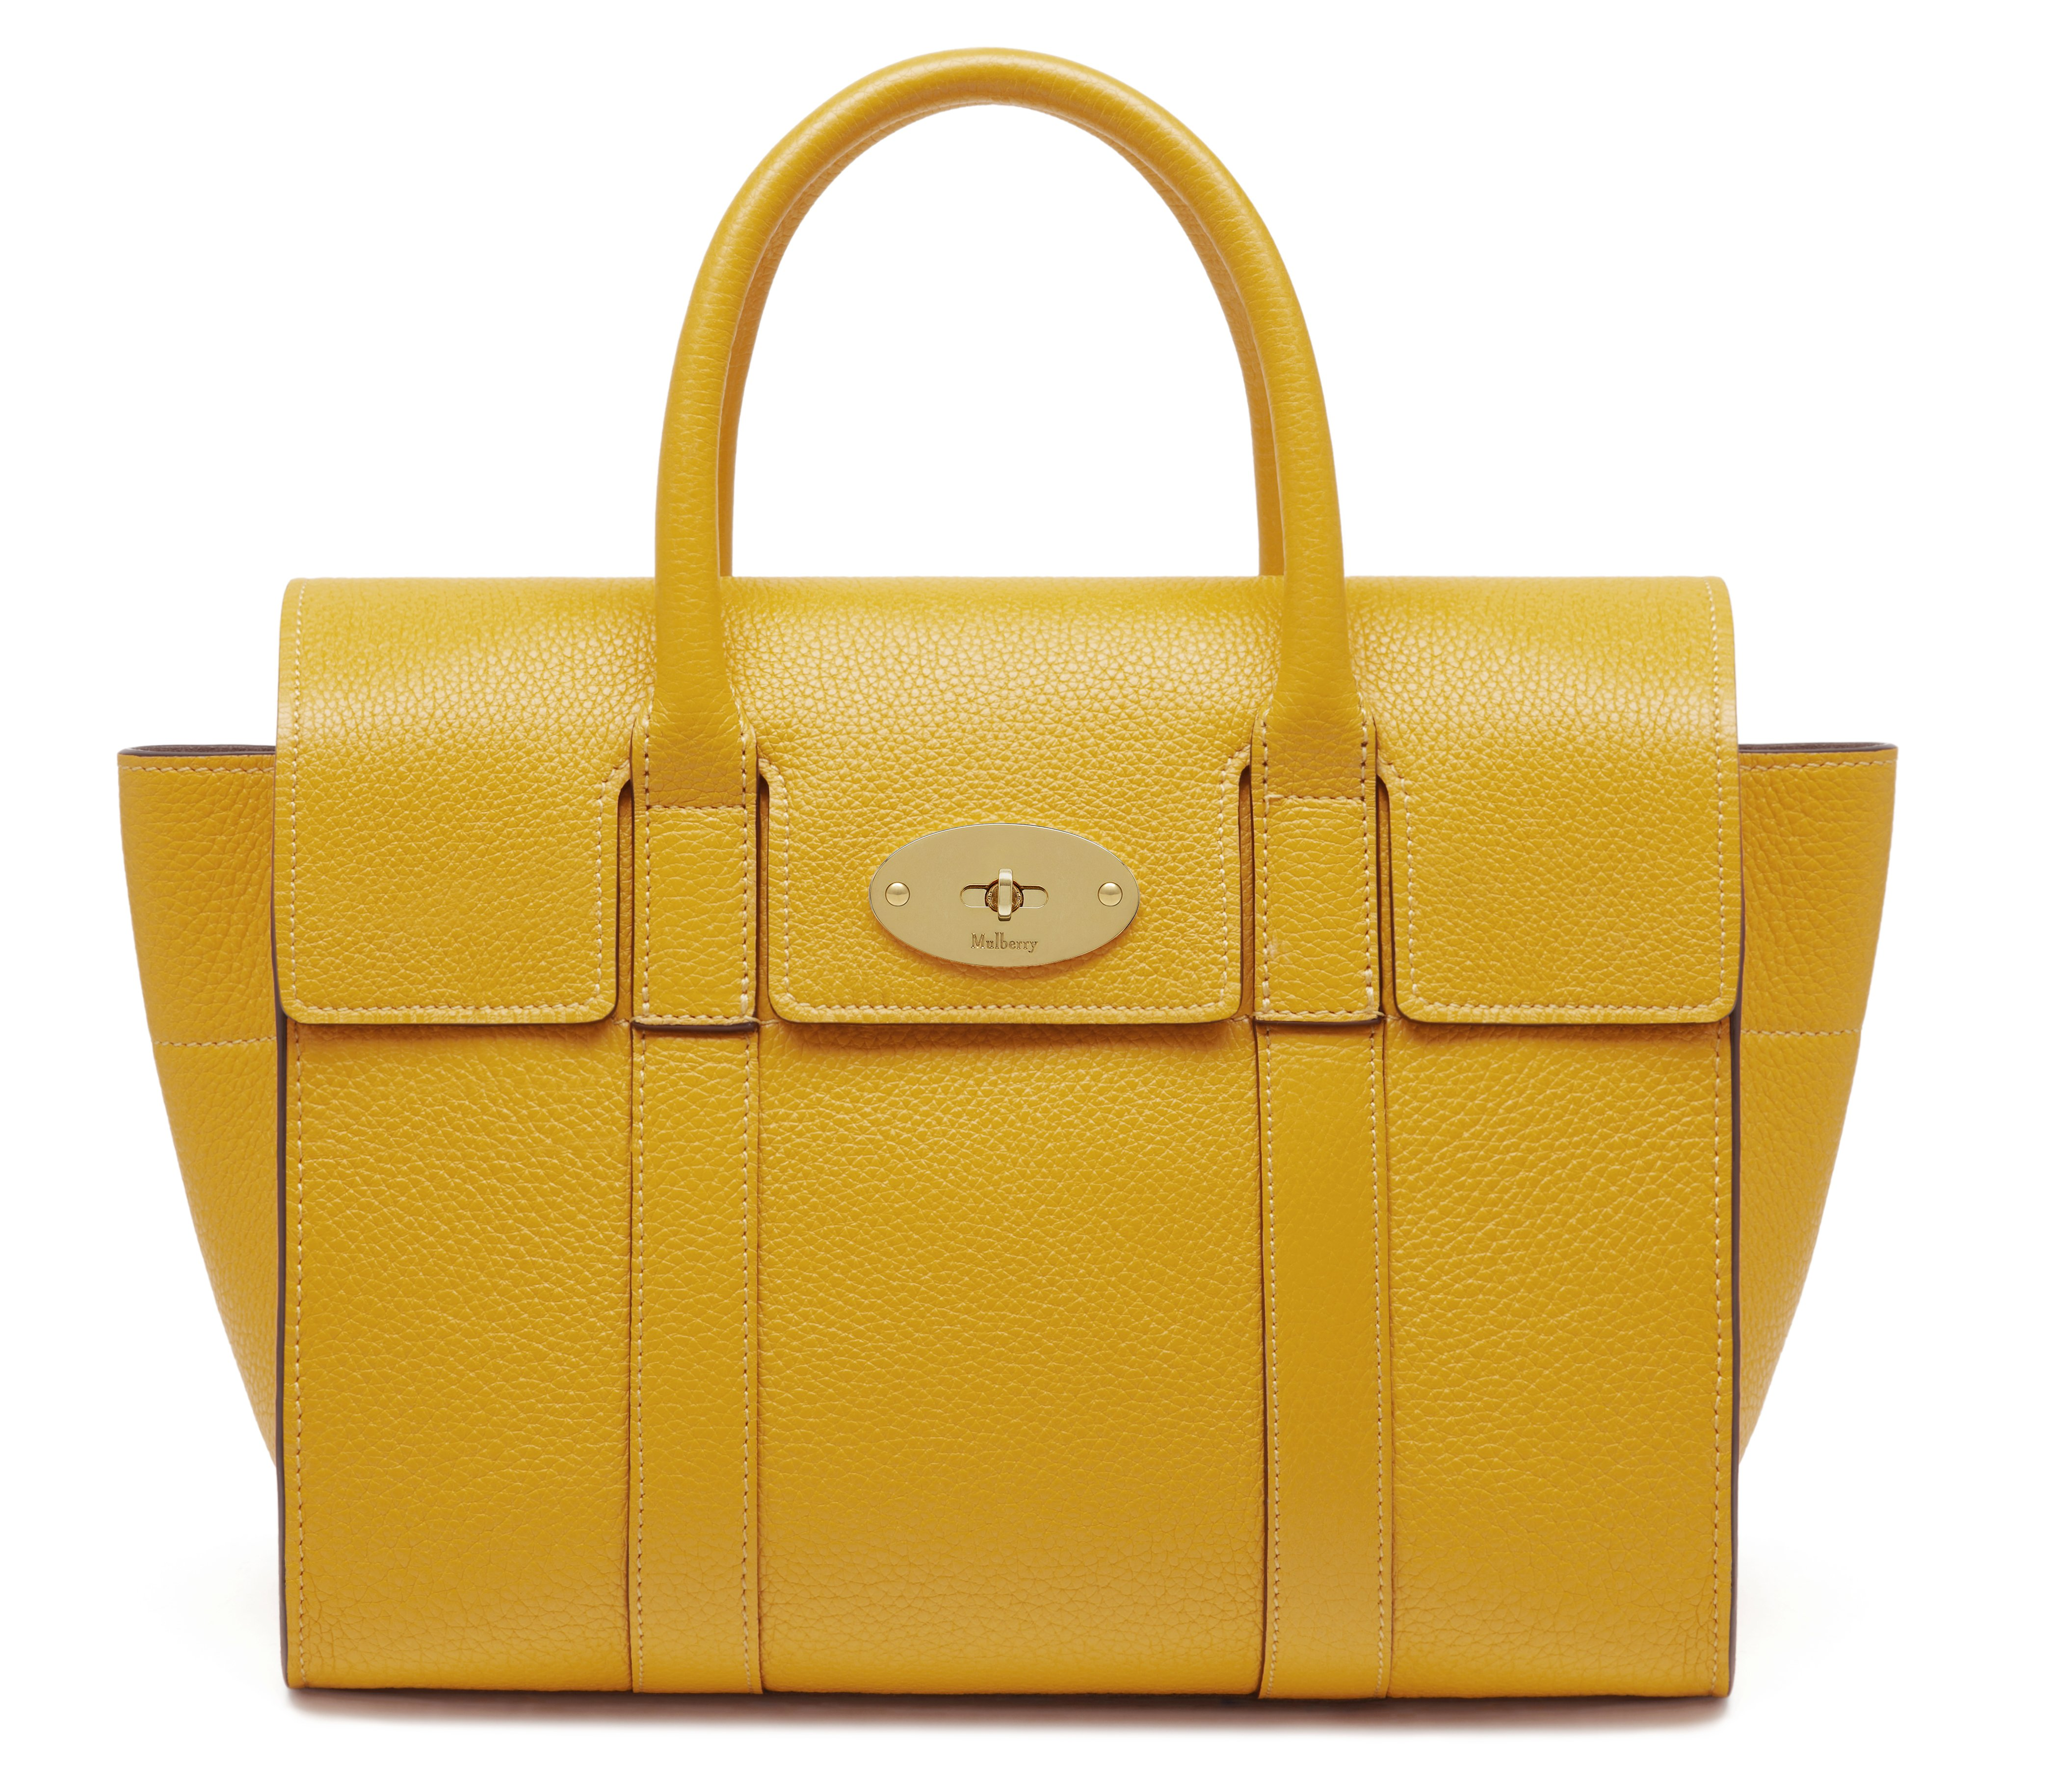 ... ireland the mulberry bayswater evolution of an iconic bag khaleej  madame 027c5 1a625 fb770489bd4f6